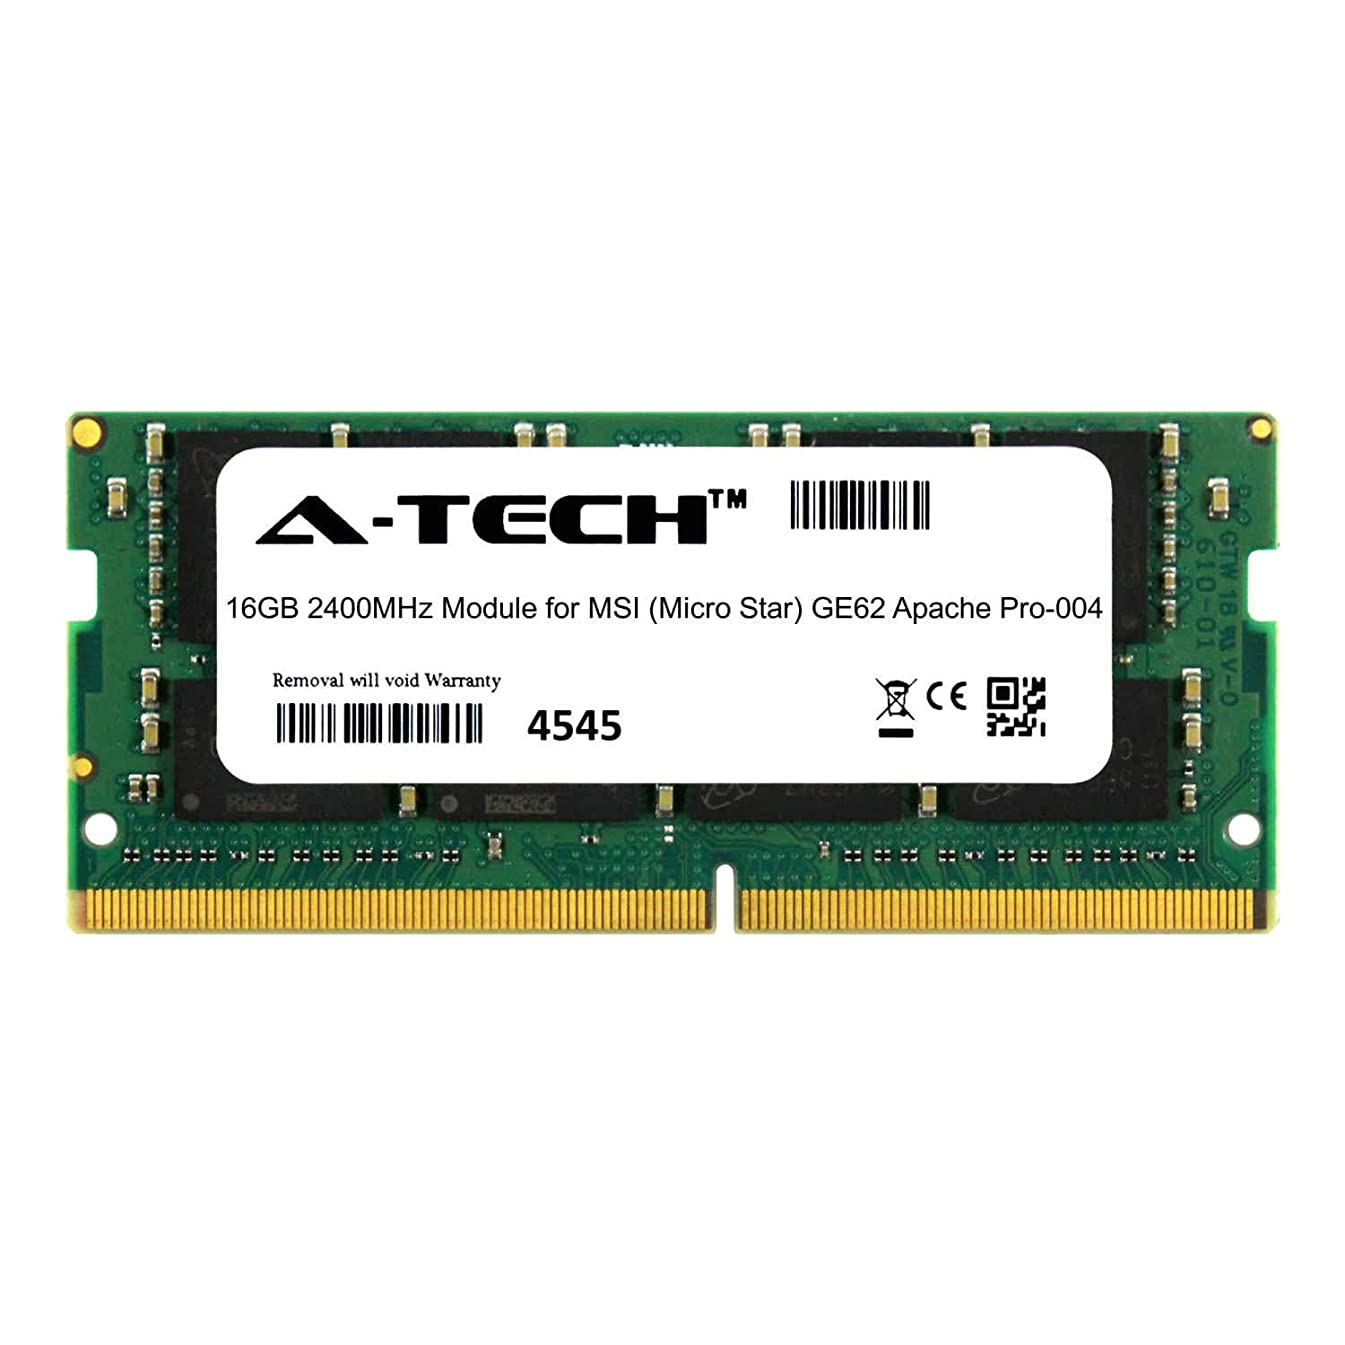 A-Tech 16GB Module for MSI (Micro Star) GE62 Apache Pro-004 Laptop & Notebook Compatible DDR4 2400Mhz Memory Ram (ATMS368281A25831X1)